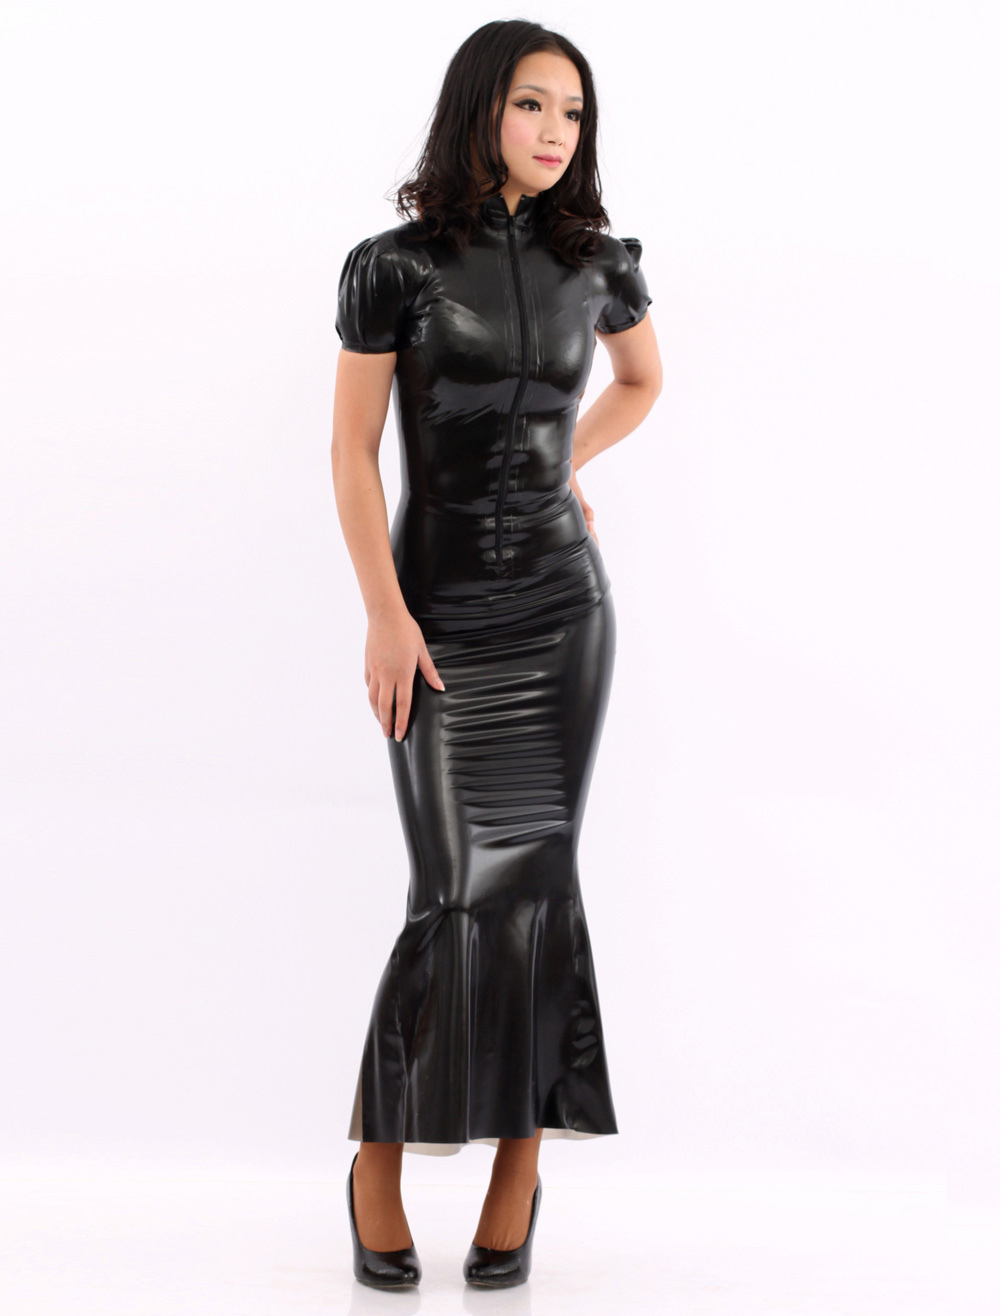 Black Short Sleeves Latex Dress Sexy Back Perpective Catsuit Halloween